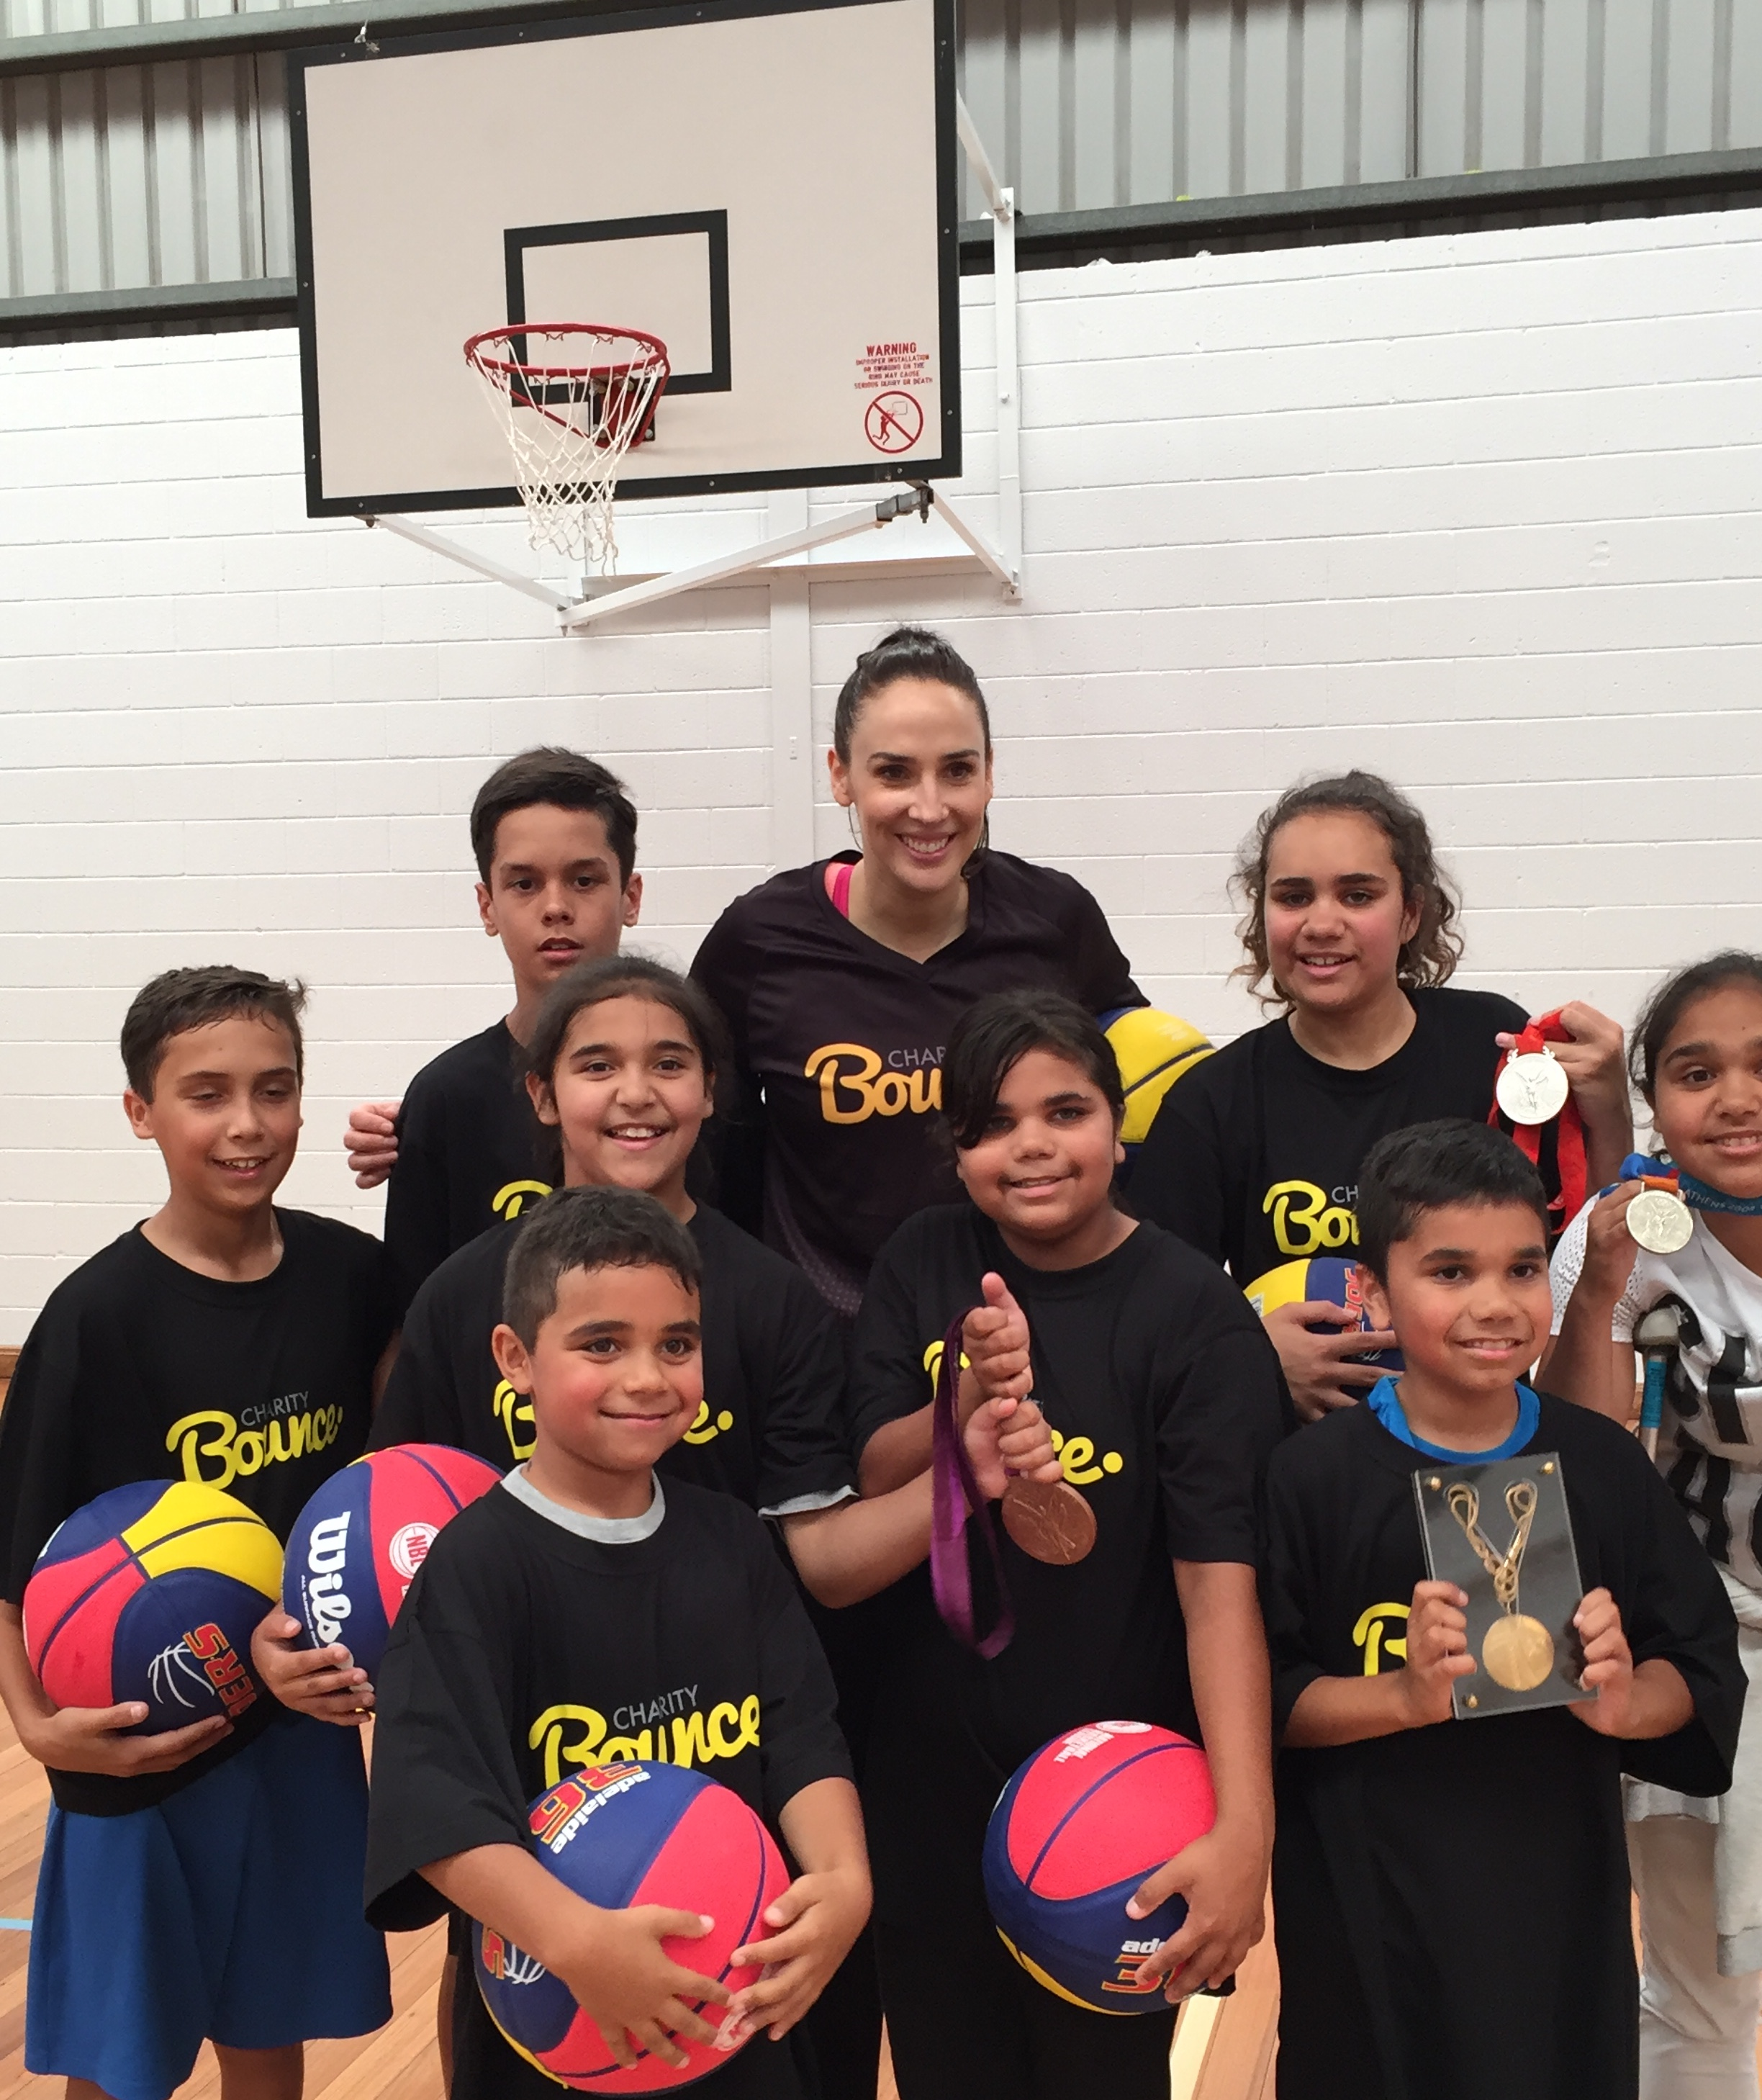 Laura Hodges shared about the Olympic values at the Stand Tall program to encourage the students.